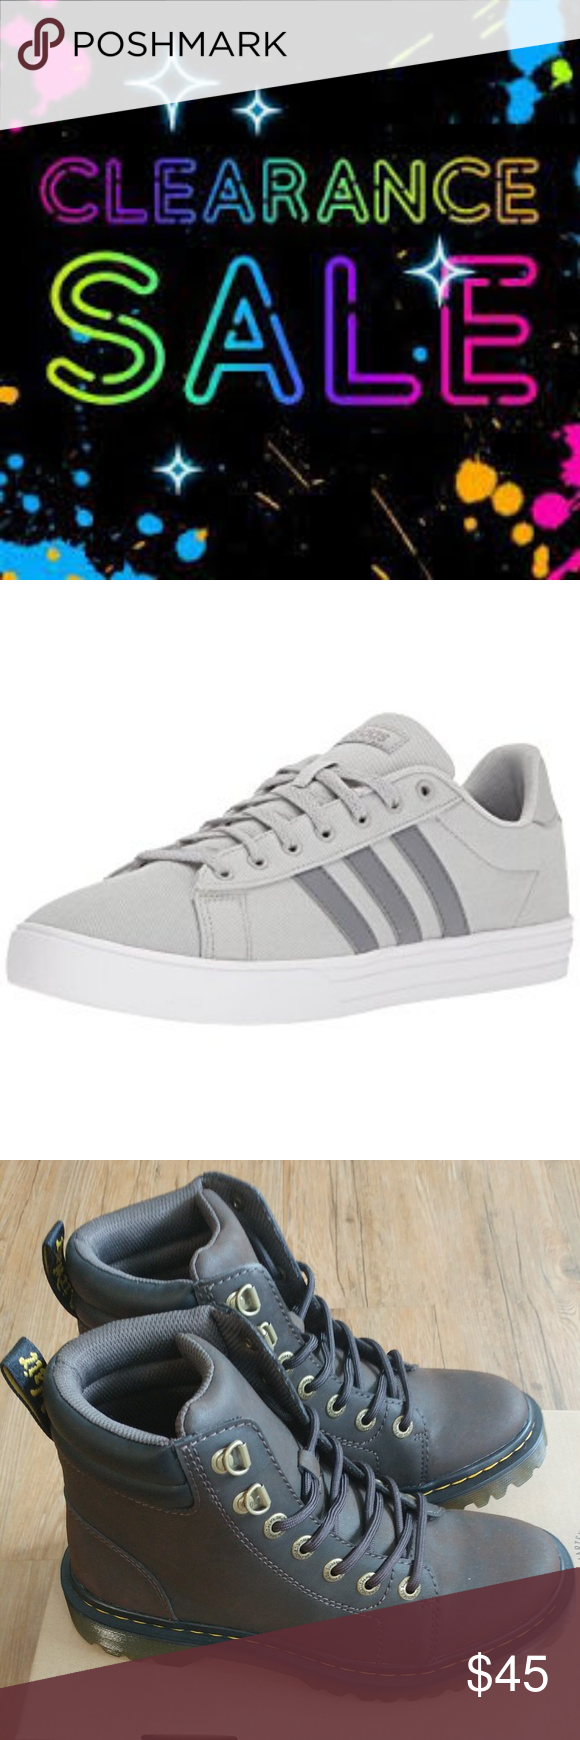 clearance sale name brand shoes Shoes